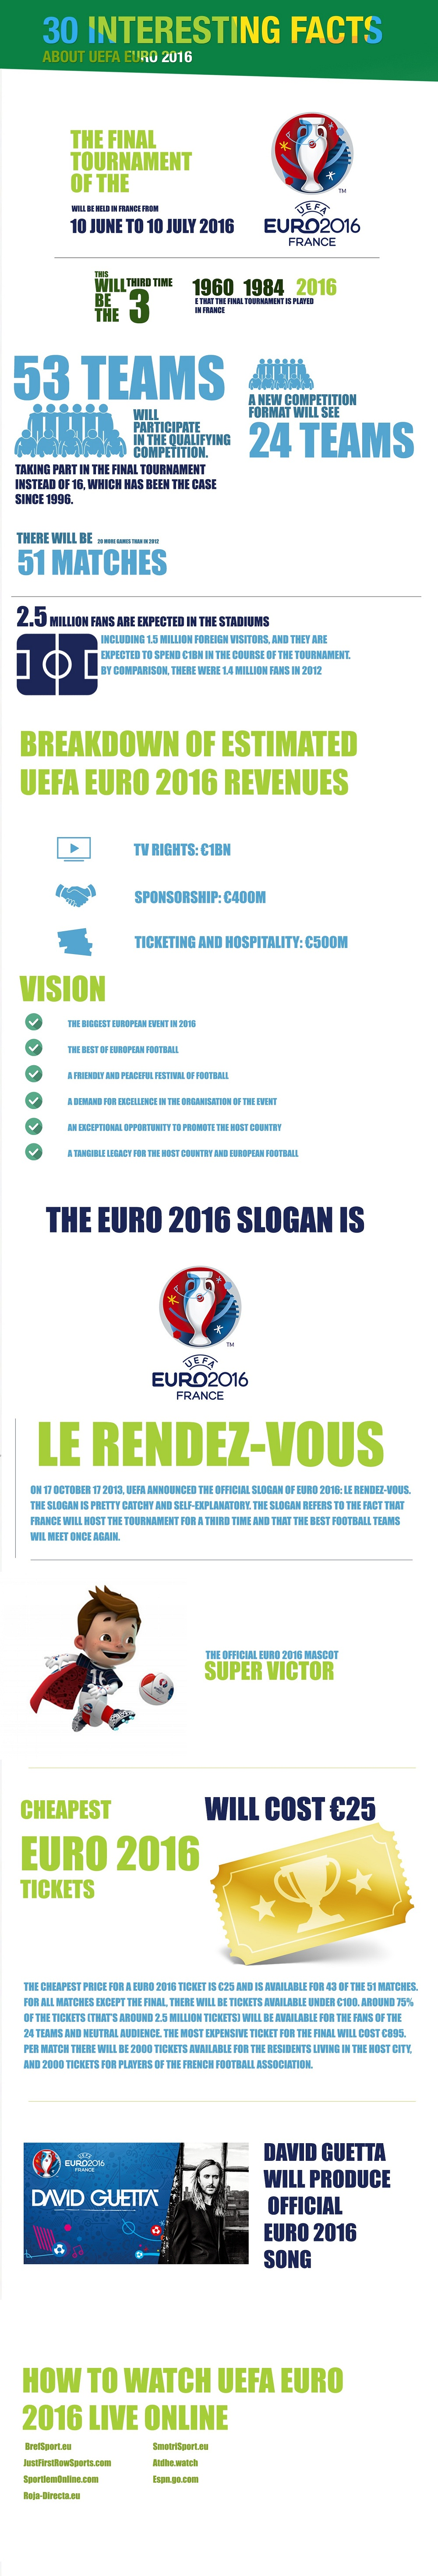 30 interesting facts about UEFA Euro 2016